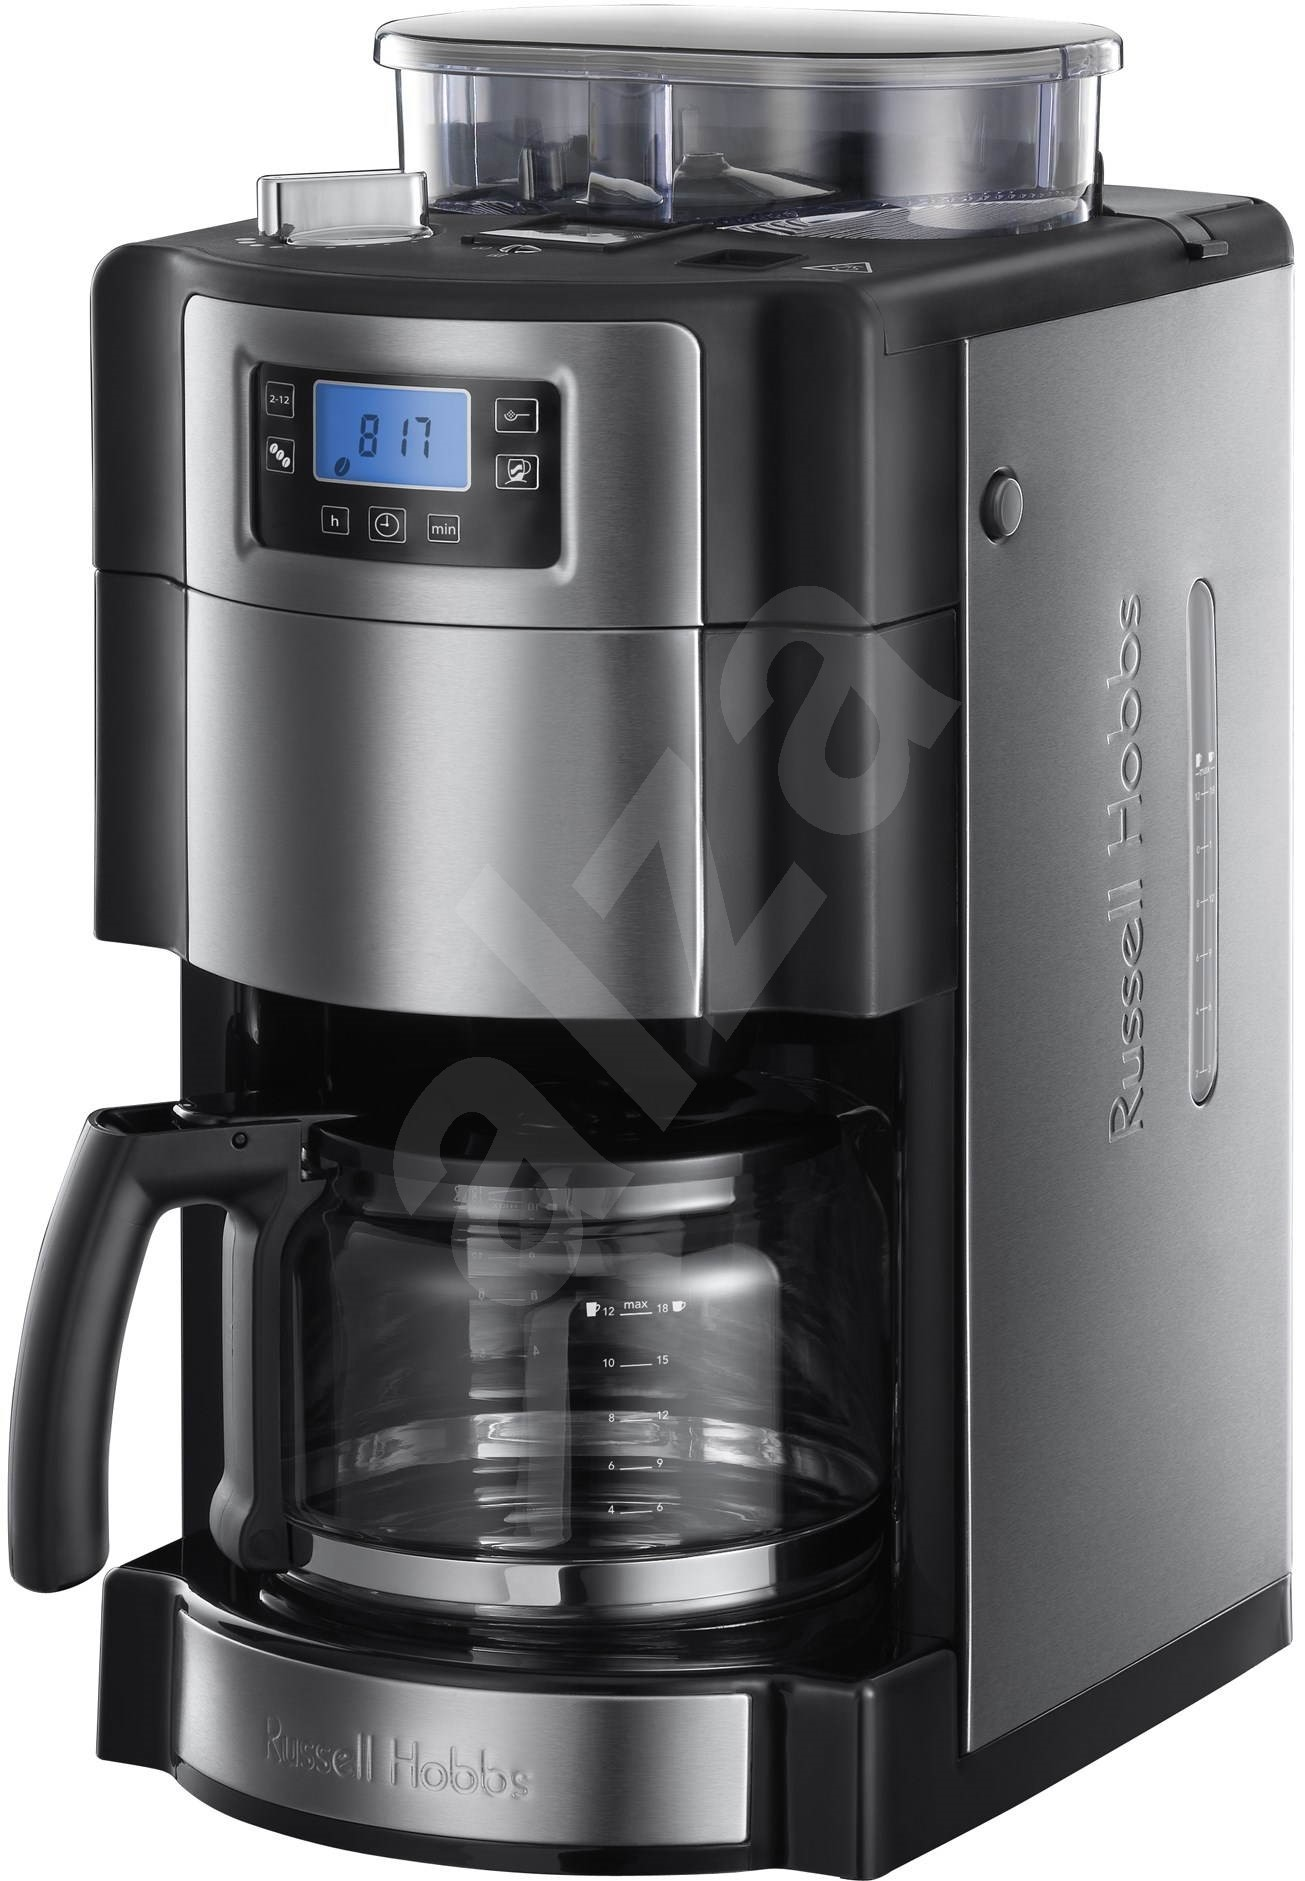 russell hobbs grind brew coffee maker 20060 56 coffeemaker. Black Bedroom Furniture Sets. Home Design Ideas